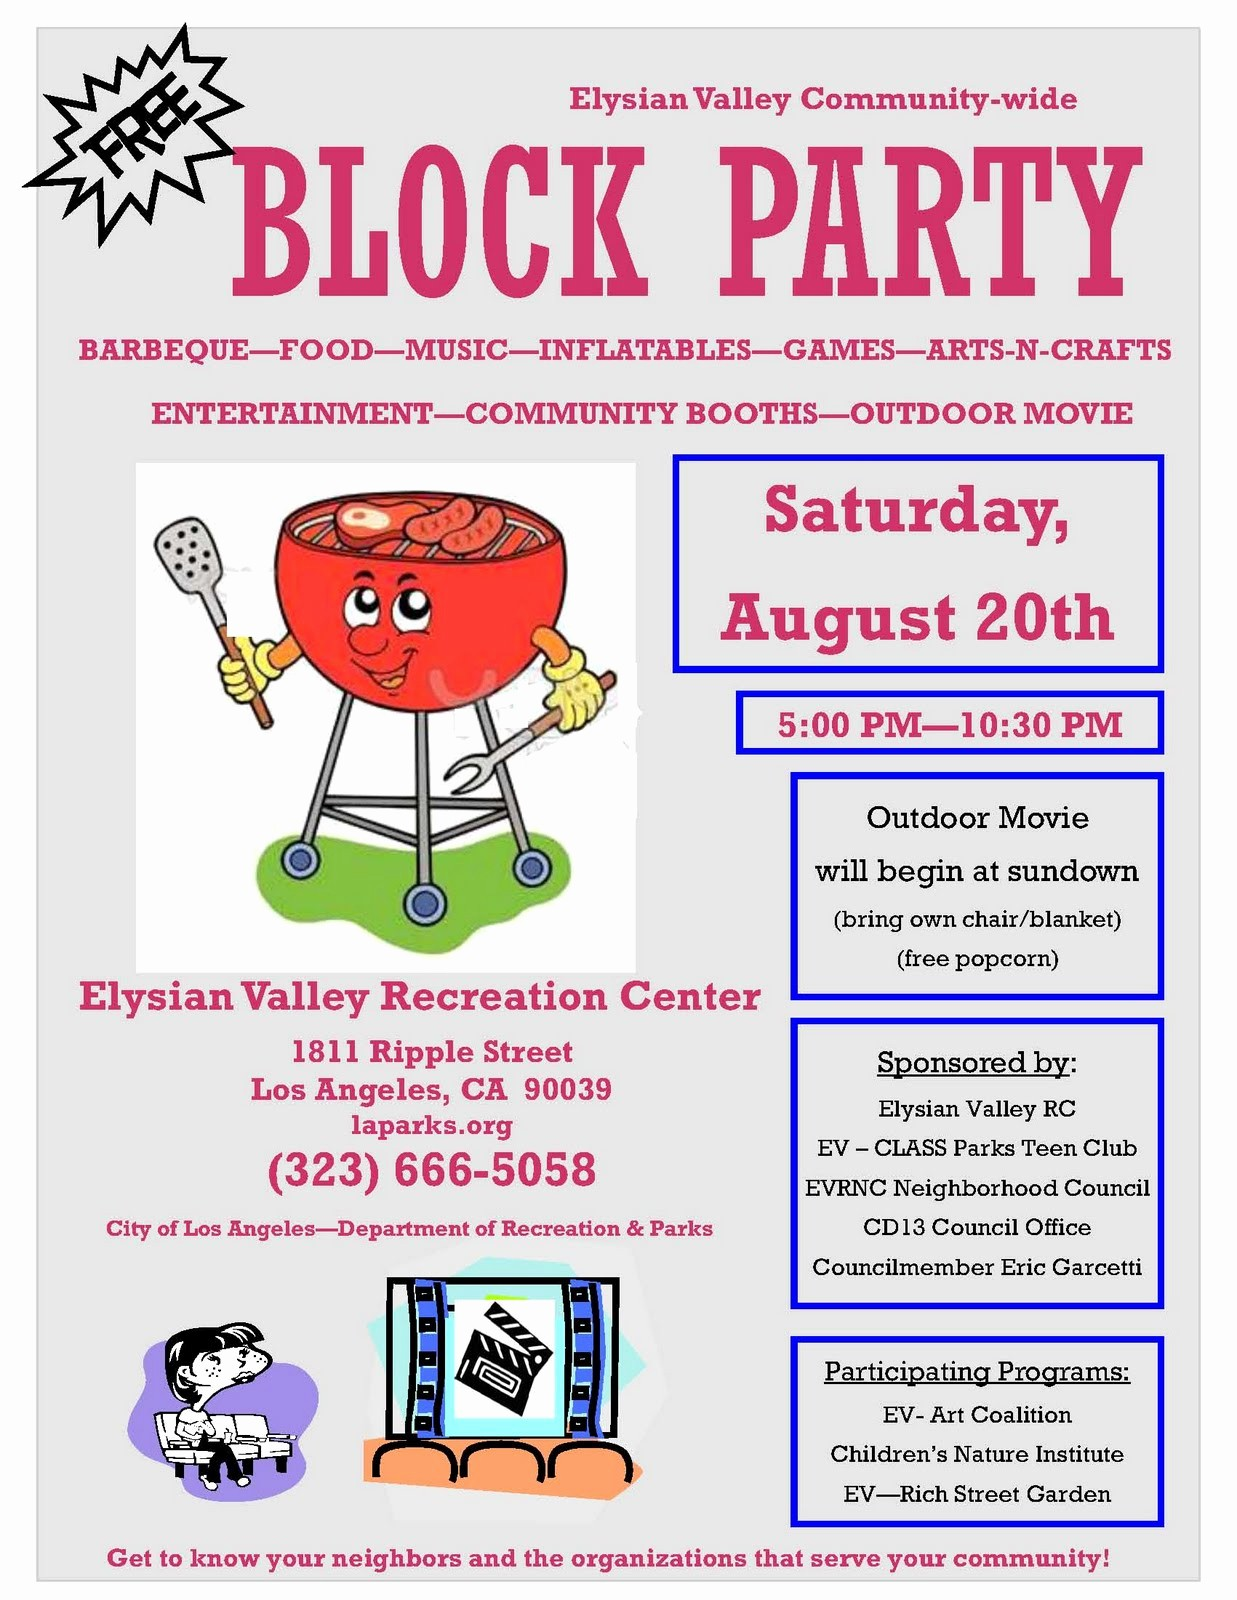 Free Block Party Flyer Template Beautiful Lacityorgcd13 Elysian Valley Block Party On August 20